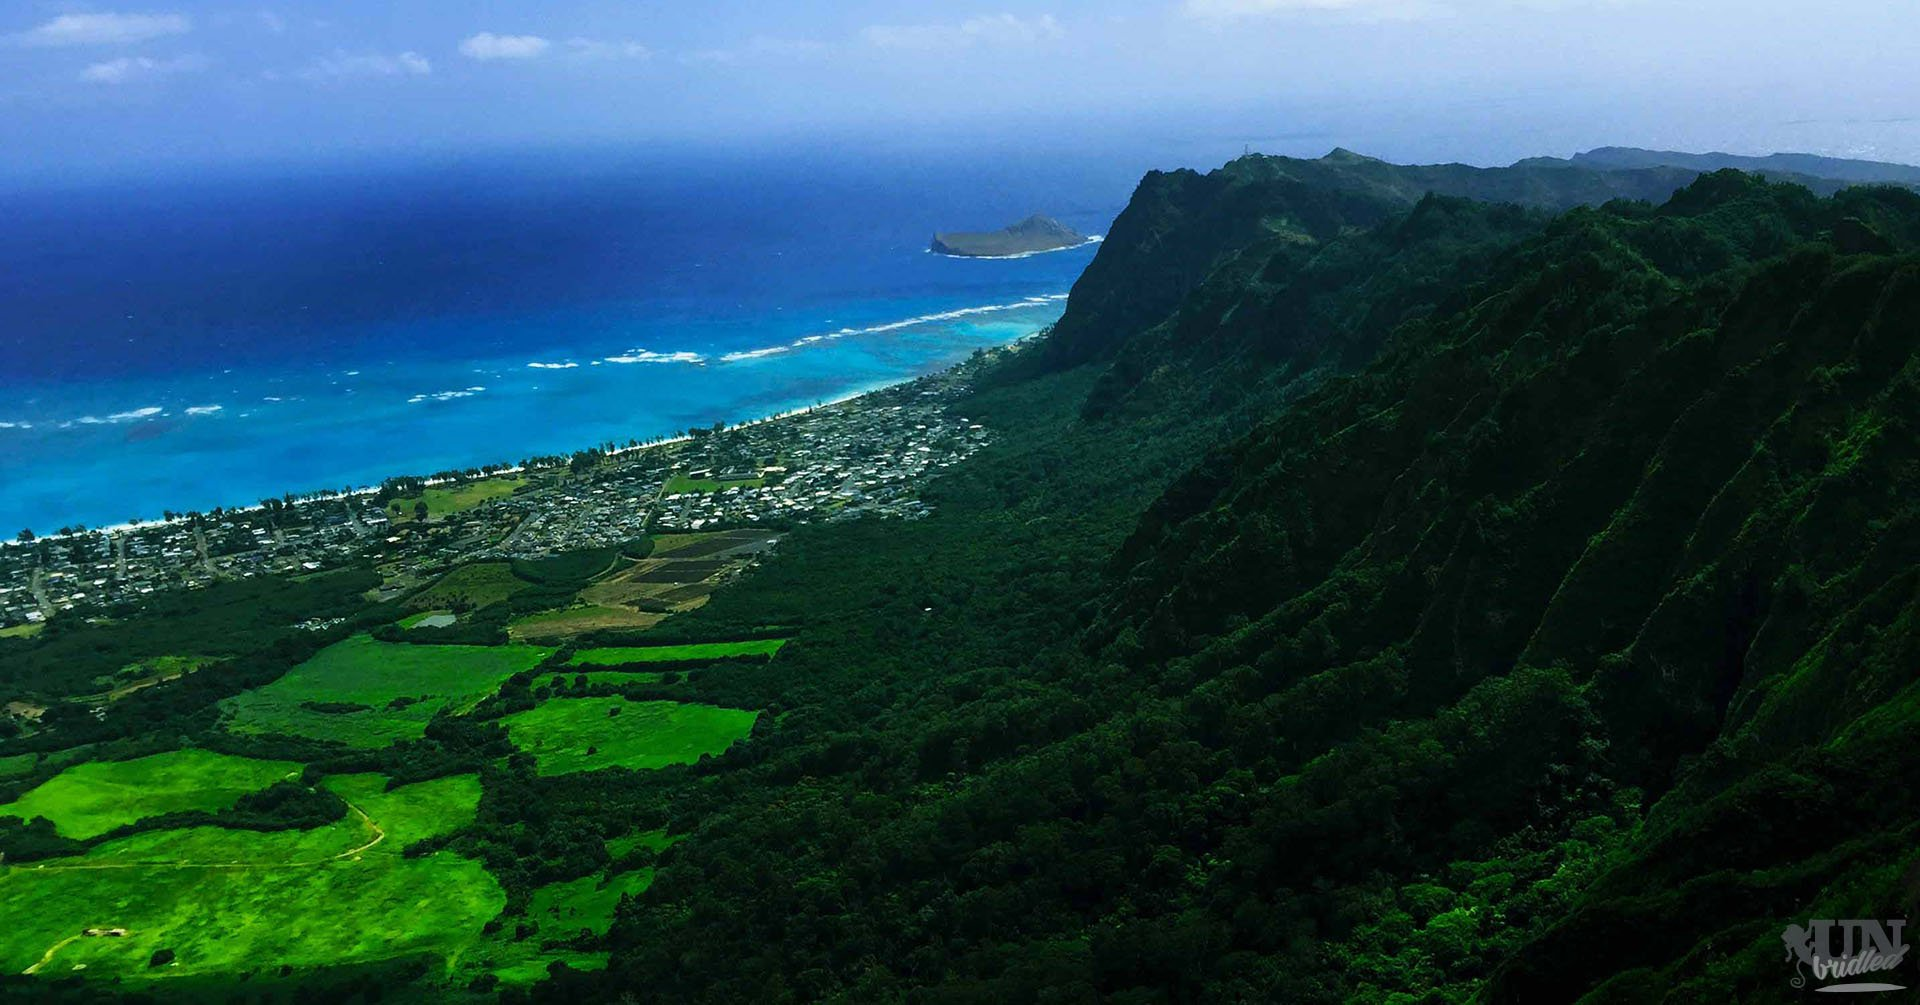 The spread mountain range behind the Waimanalo beach is covered in green